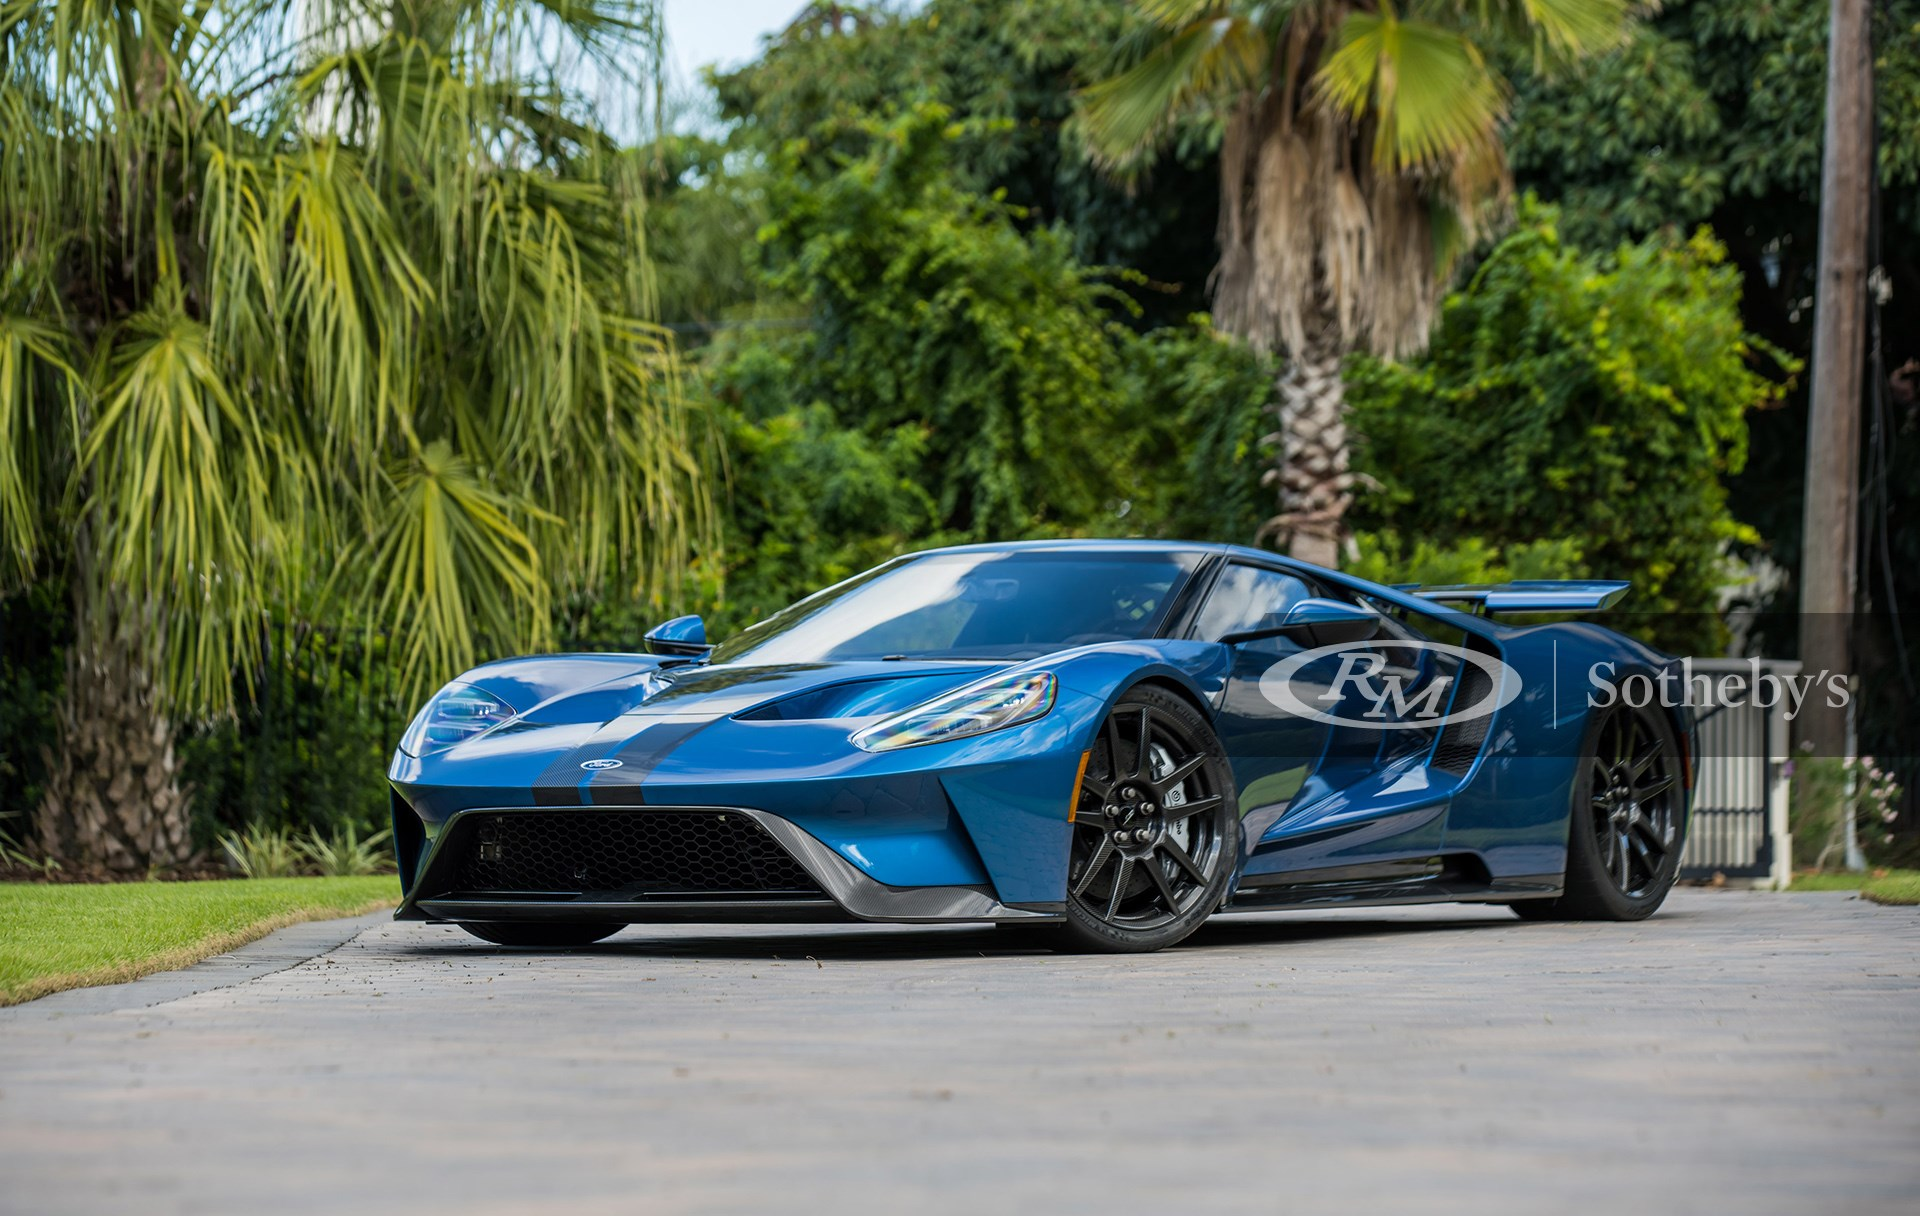 Liquid Blue Tri-Coat with Carbon Fiber Stripes 2019 Ford GT Lightweight available at RM Sotheby's Arizona Live Auction 2021